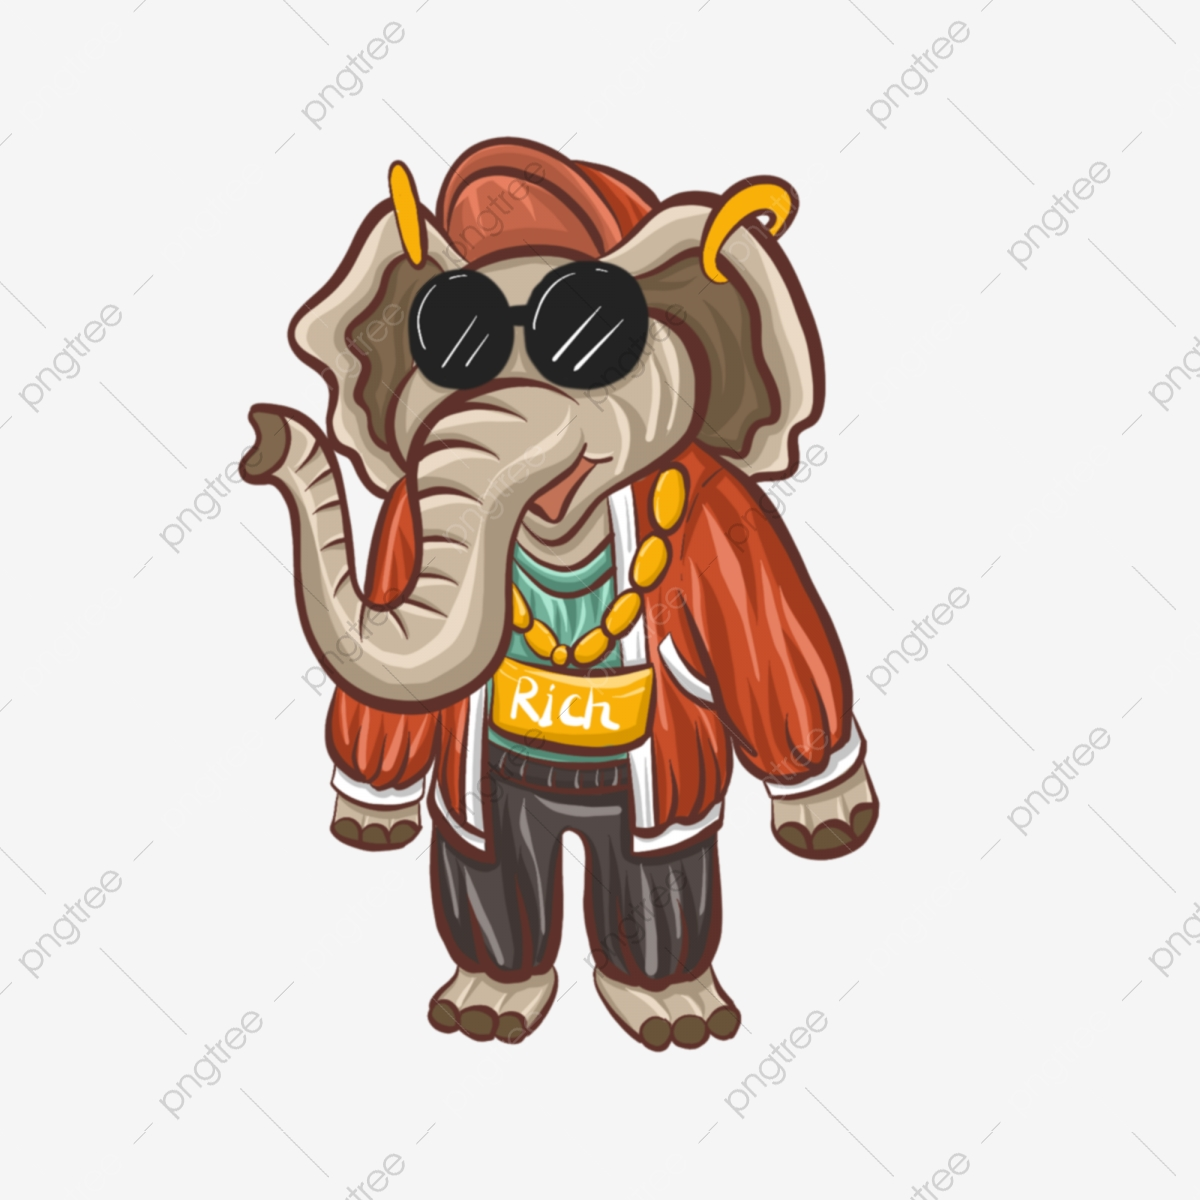 Cartoon Elephant Png Download Elephant Cartoon Animal Animal Illustration Png Transparent Clipart Image And Psd File For Free Download Also, find more png clipart about business clipart,wildlife clipart,people clipart. https pngtree com freepng cartoon elephant png download 4654686 html